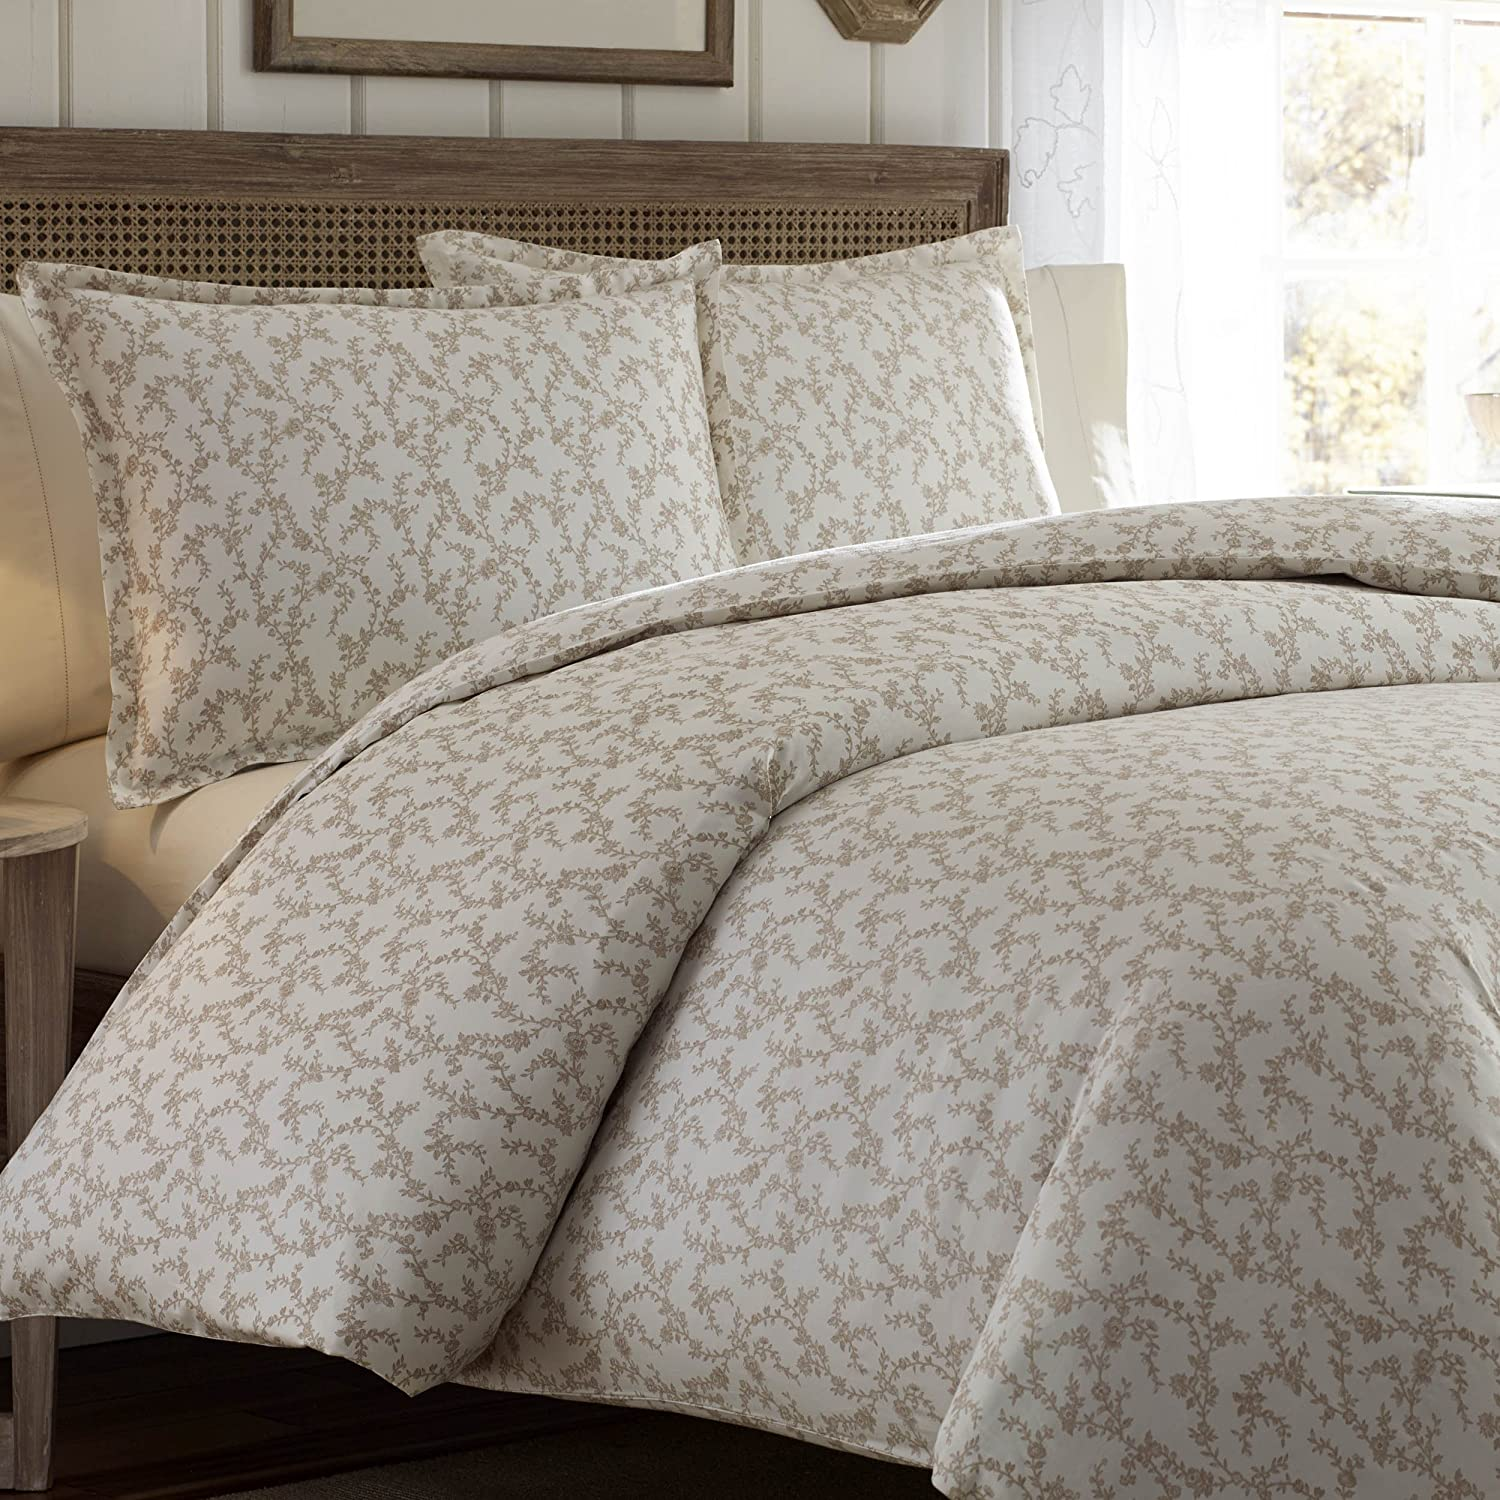 Laura Ashley Duvet Covers King